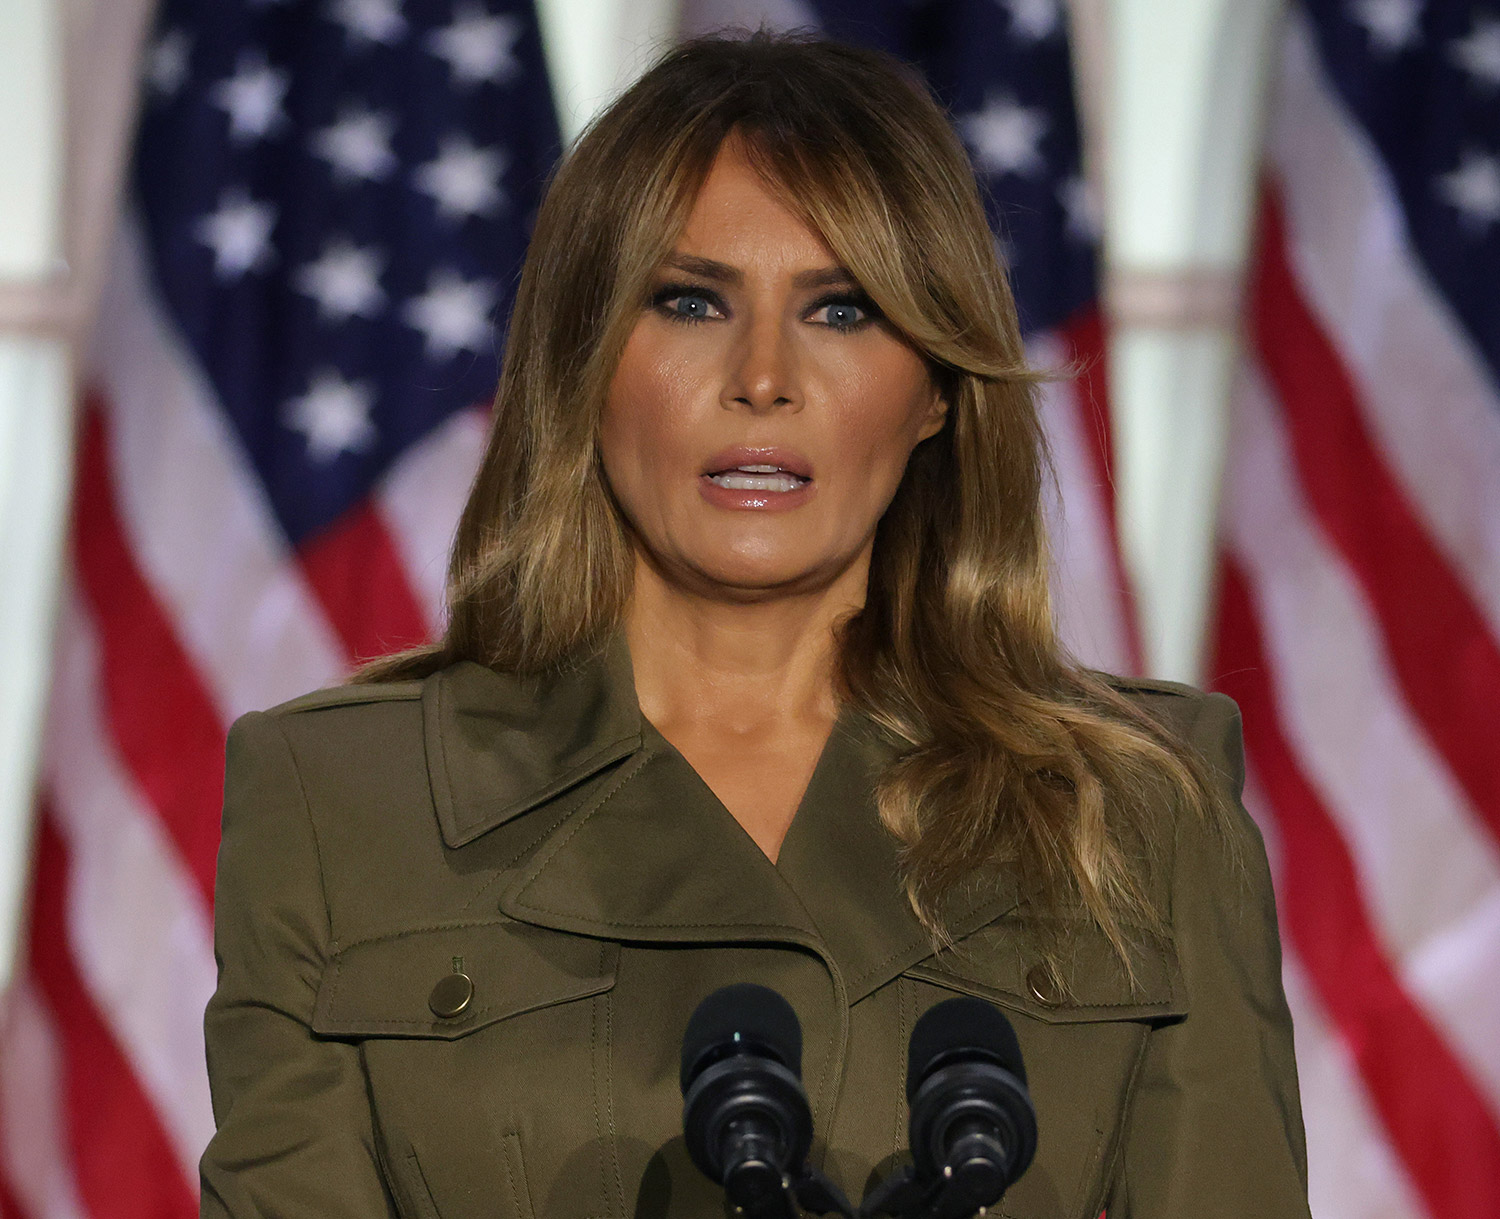 Melania Trump S Rnc Speech Includes Covid 19 Deaths Protests People Com